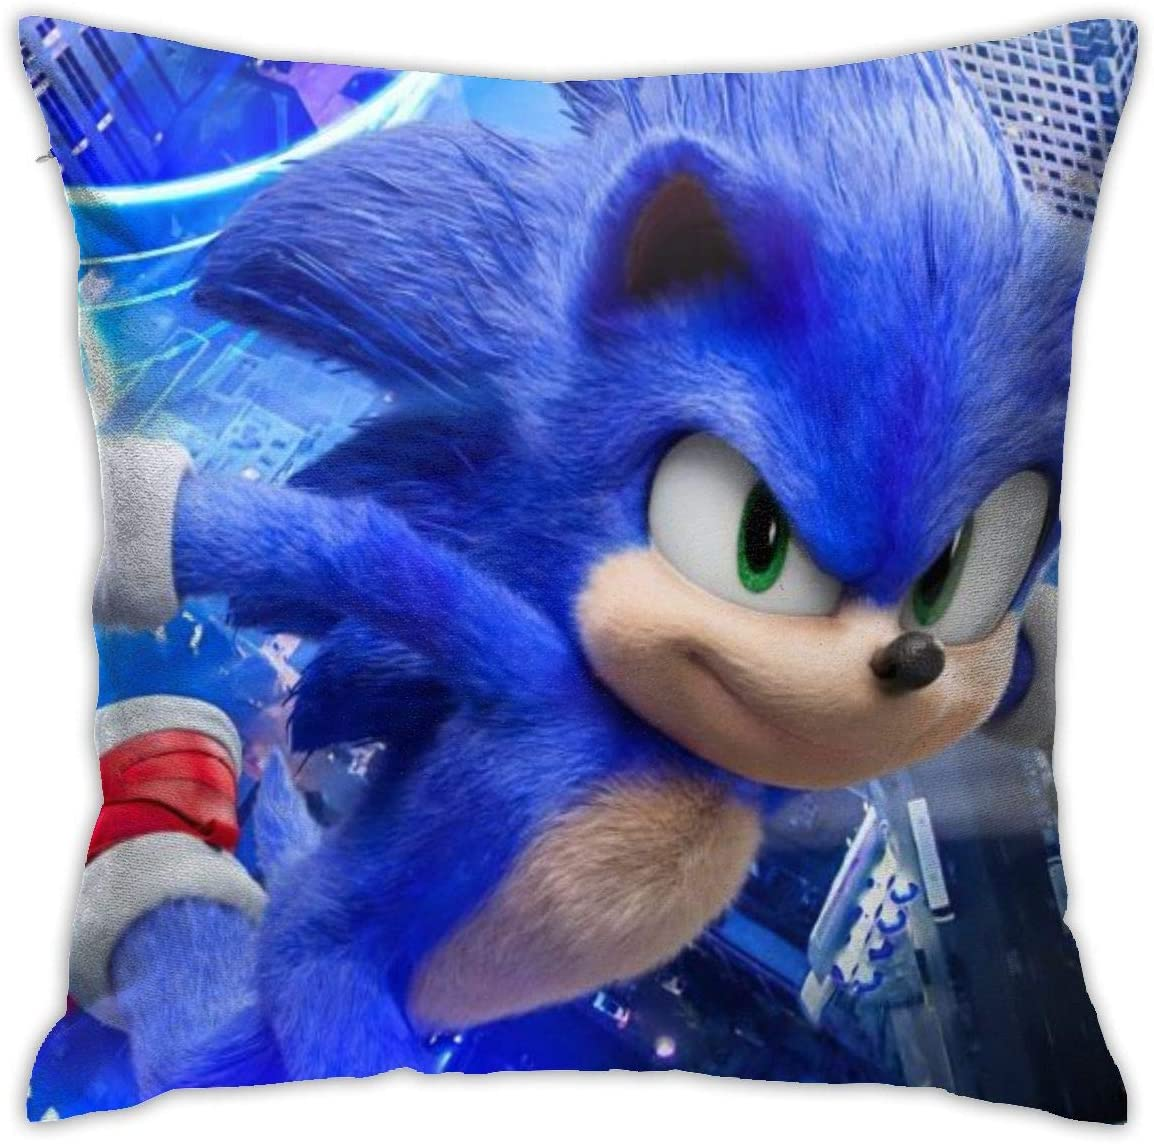 NYF Sonic The Hedgehog Pillow Case Both Sides Print Zipper Square Pillow Cover, Soft Comfortable Throw Pillowcase Cushion Cover 18 x 18 Inch